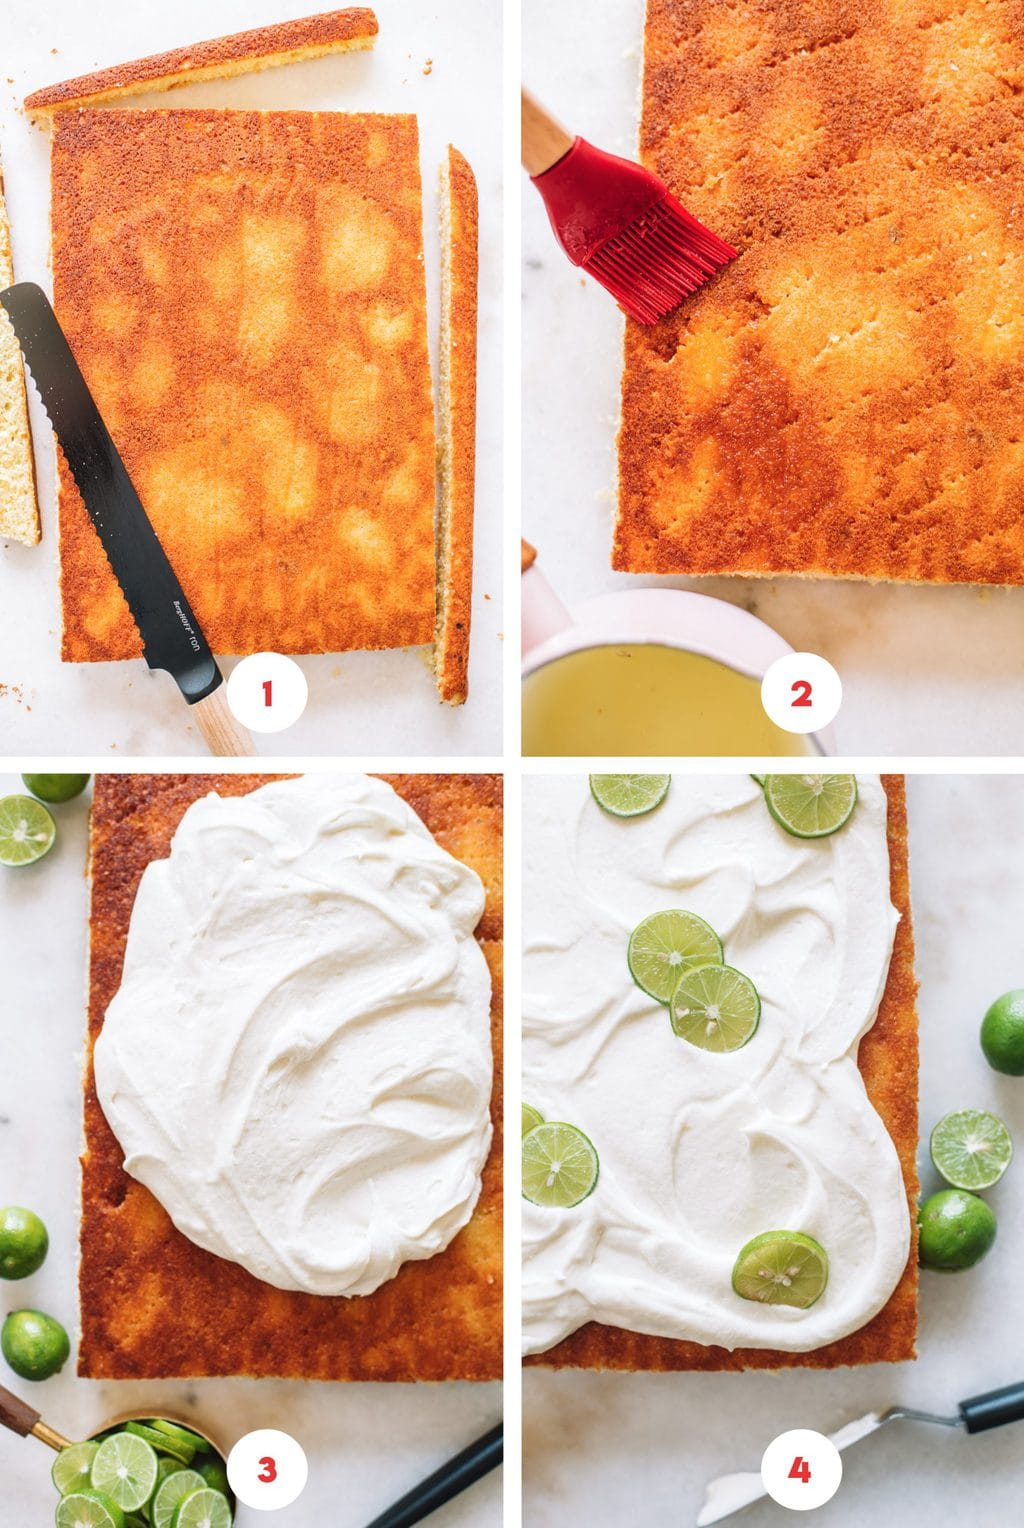 Step by step process on how to put a key lime cake together.